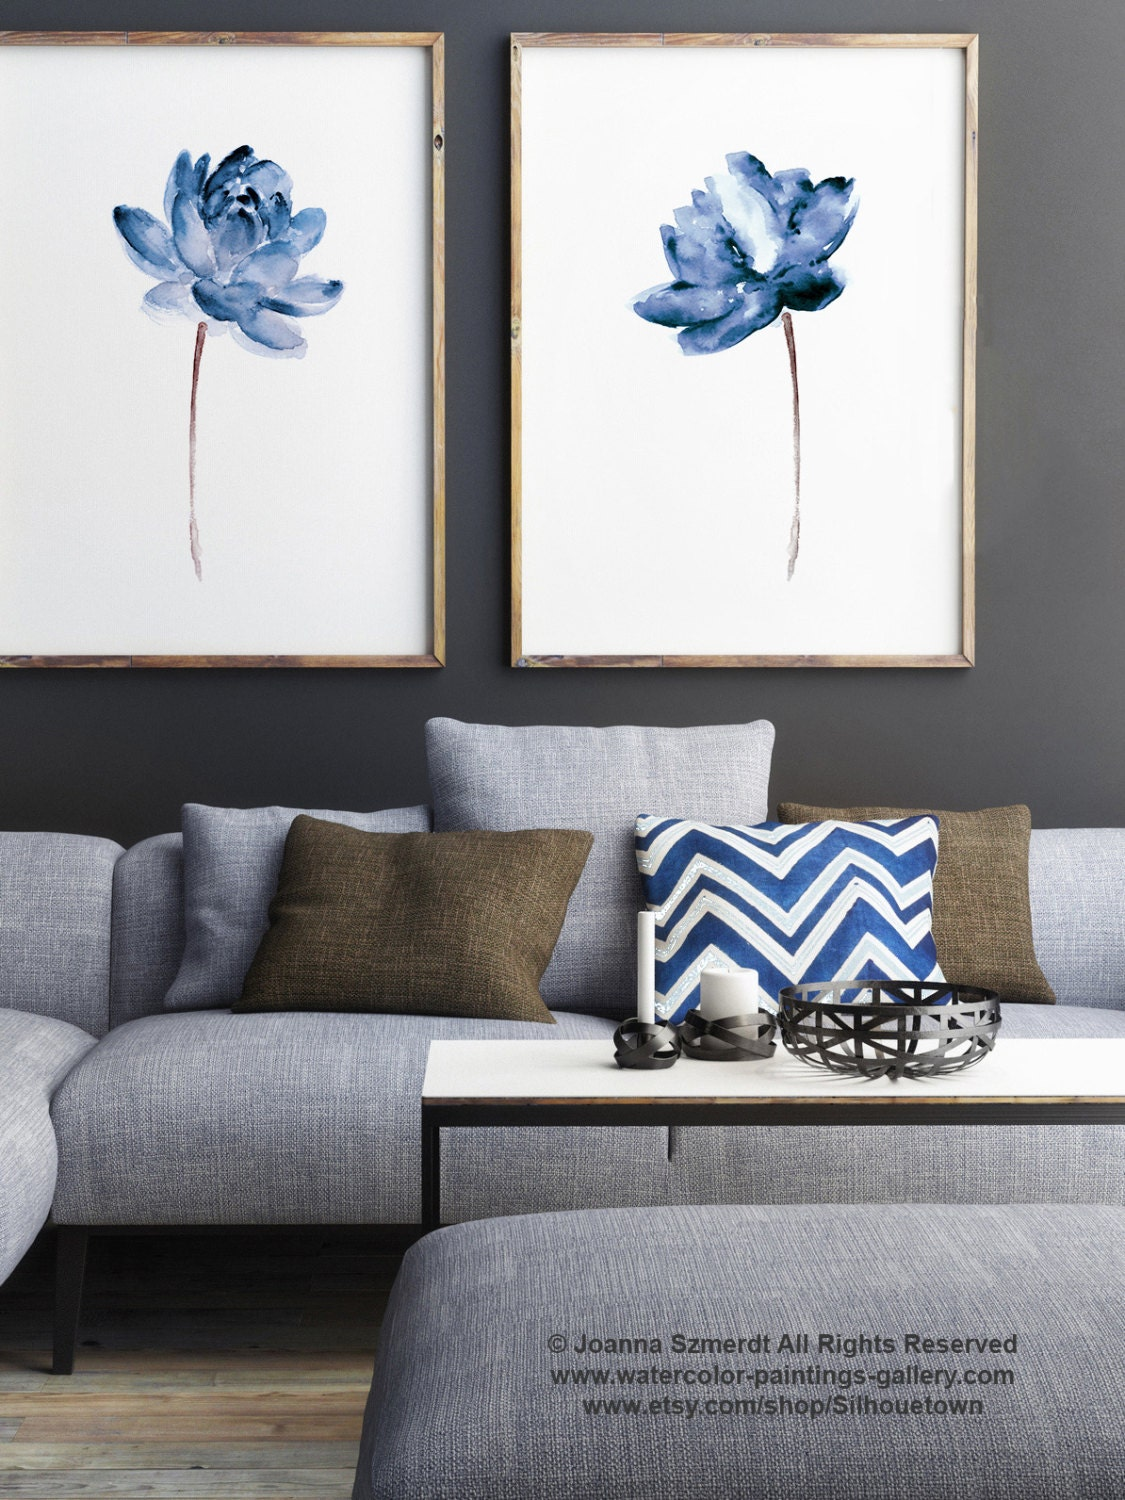 Lotus set of 2 watercolor painting blue water flowers art for Living room wall decor